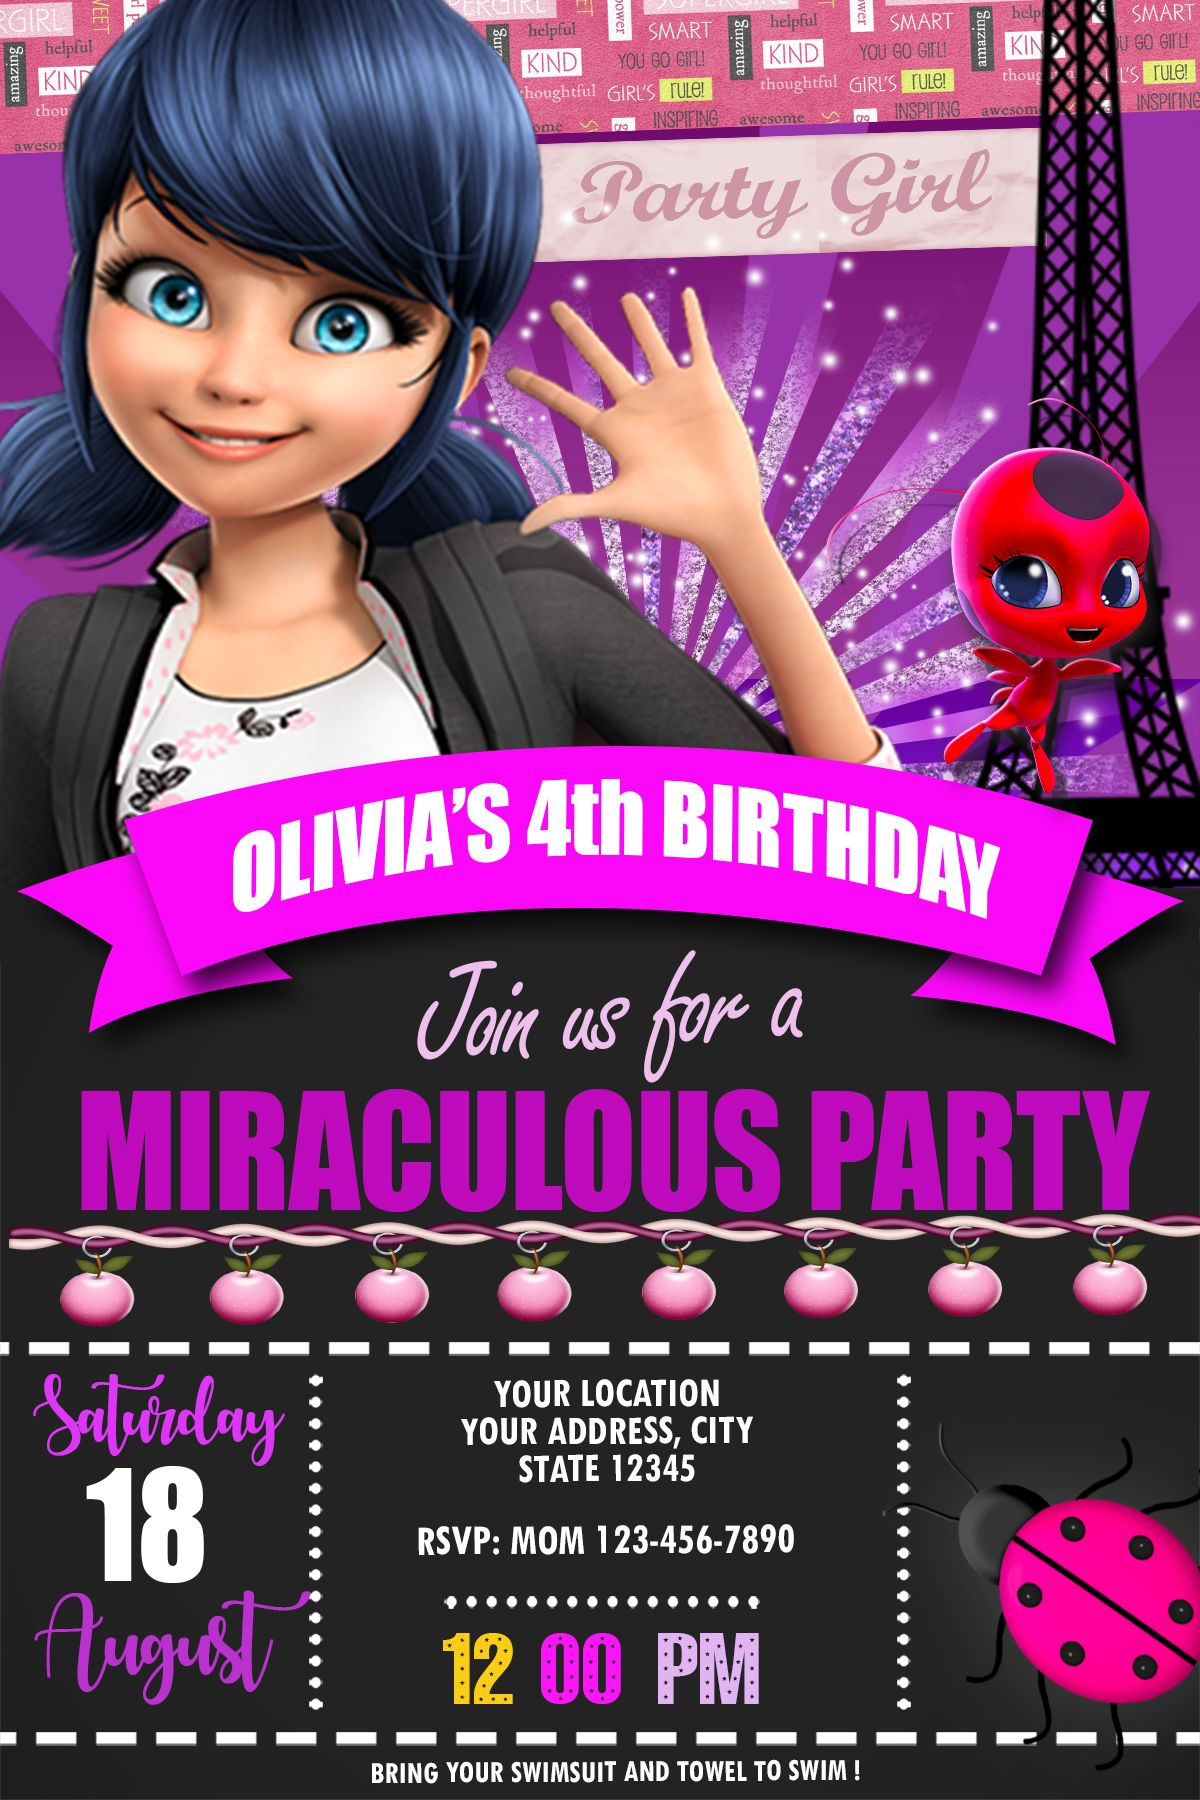 Personal Moments 10 PERSONALISED MY LITTLE PONY GIRL BIRTHDAY PARTY INVITES INVITATIONS KIDS